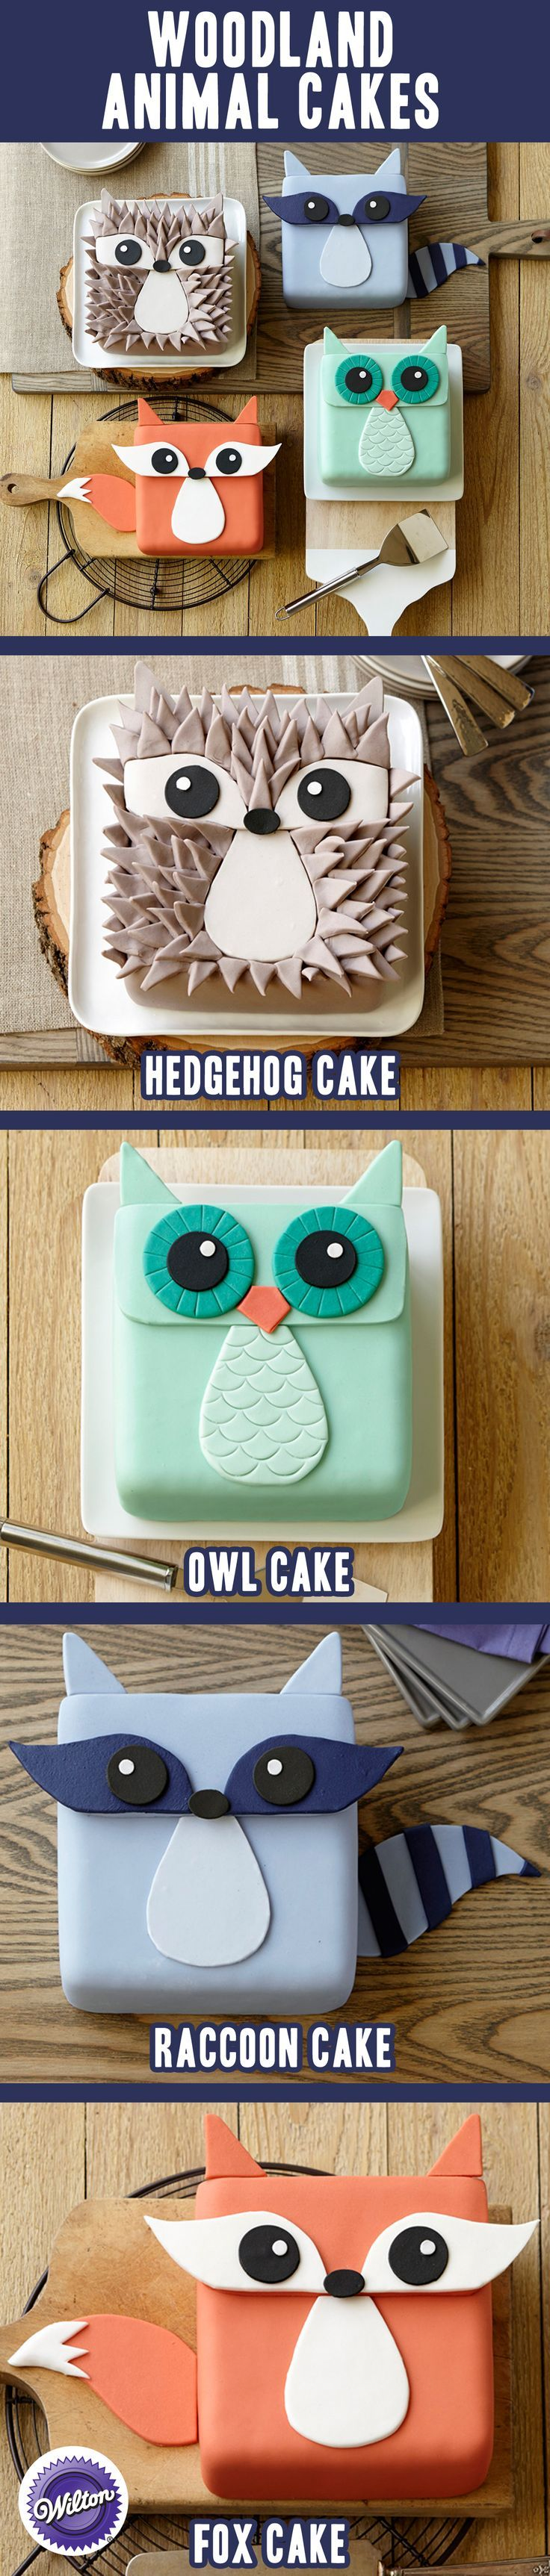 Use a square pan to make four different fondant Woodland Animal Cakes    Cake decorating ideas www.wilton.com/home